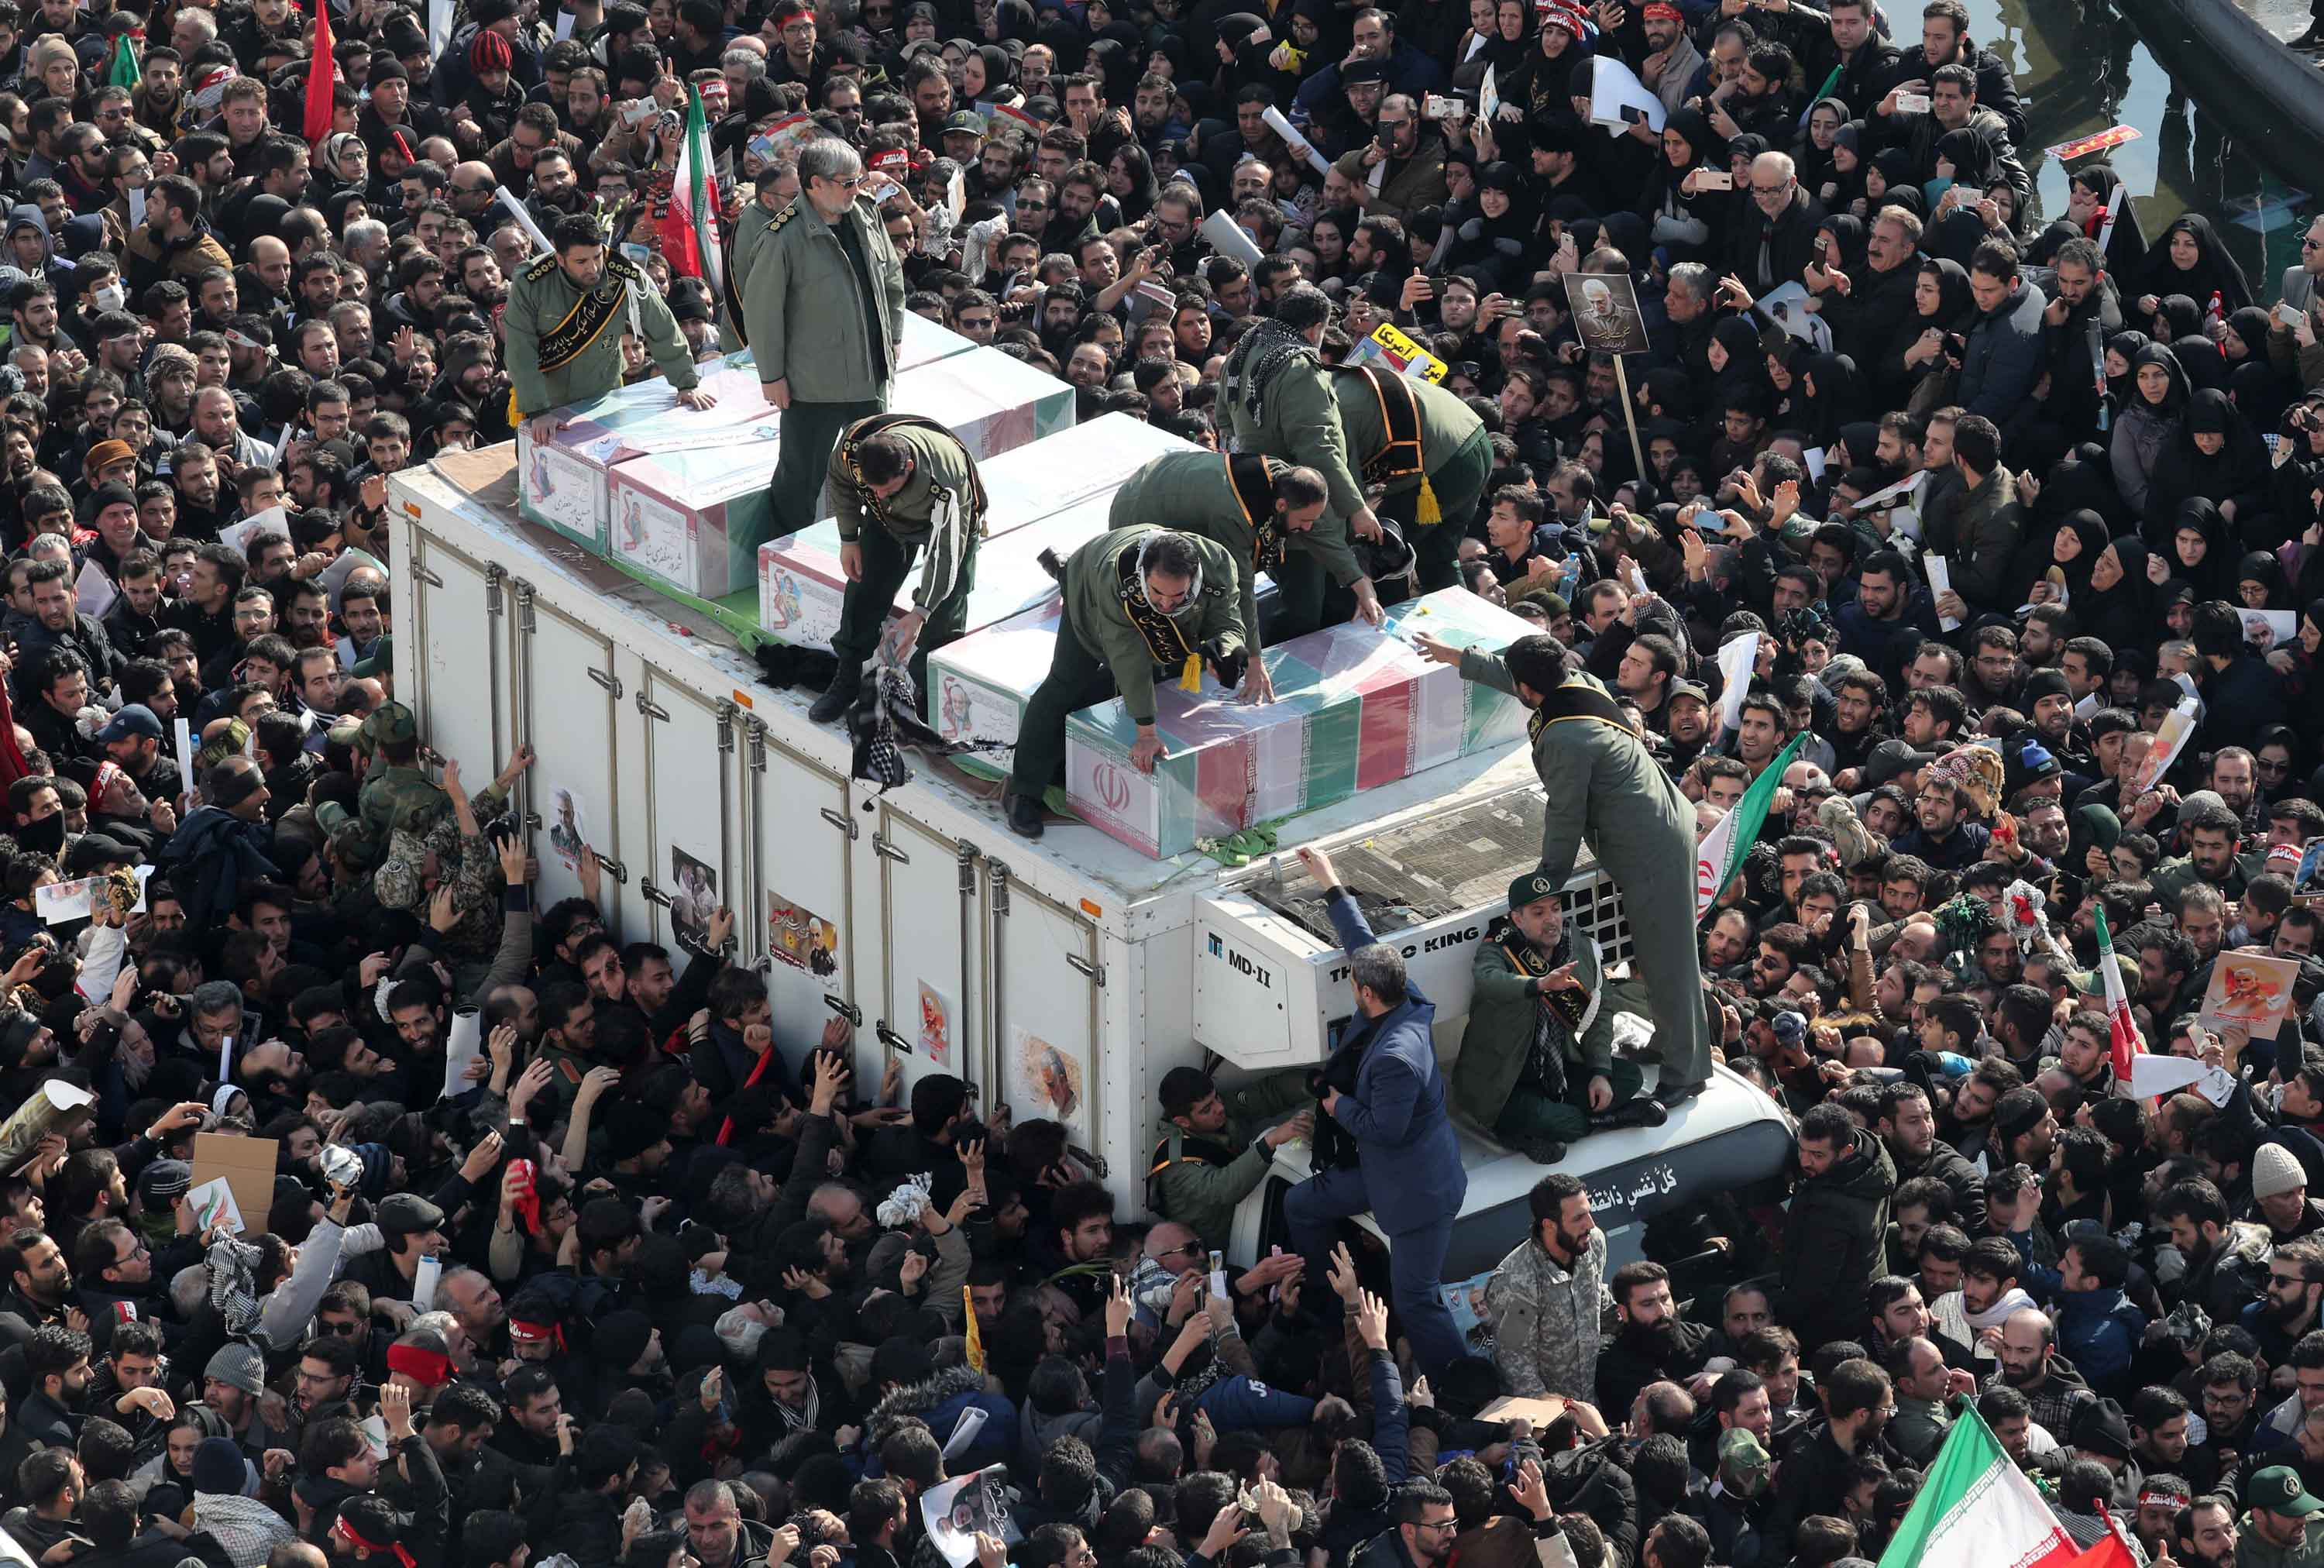 Iranians surround the coffins of Soleimani and others killed in a US airstrike in Baghdad on Friday.